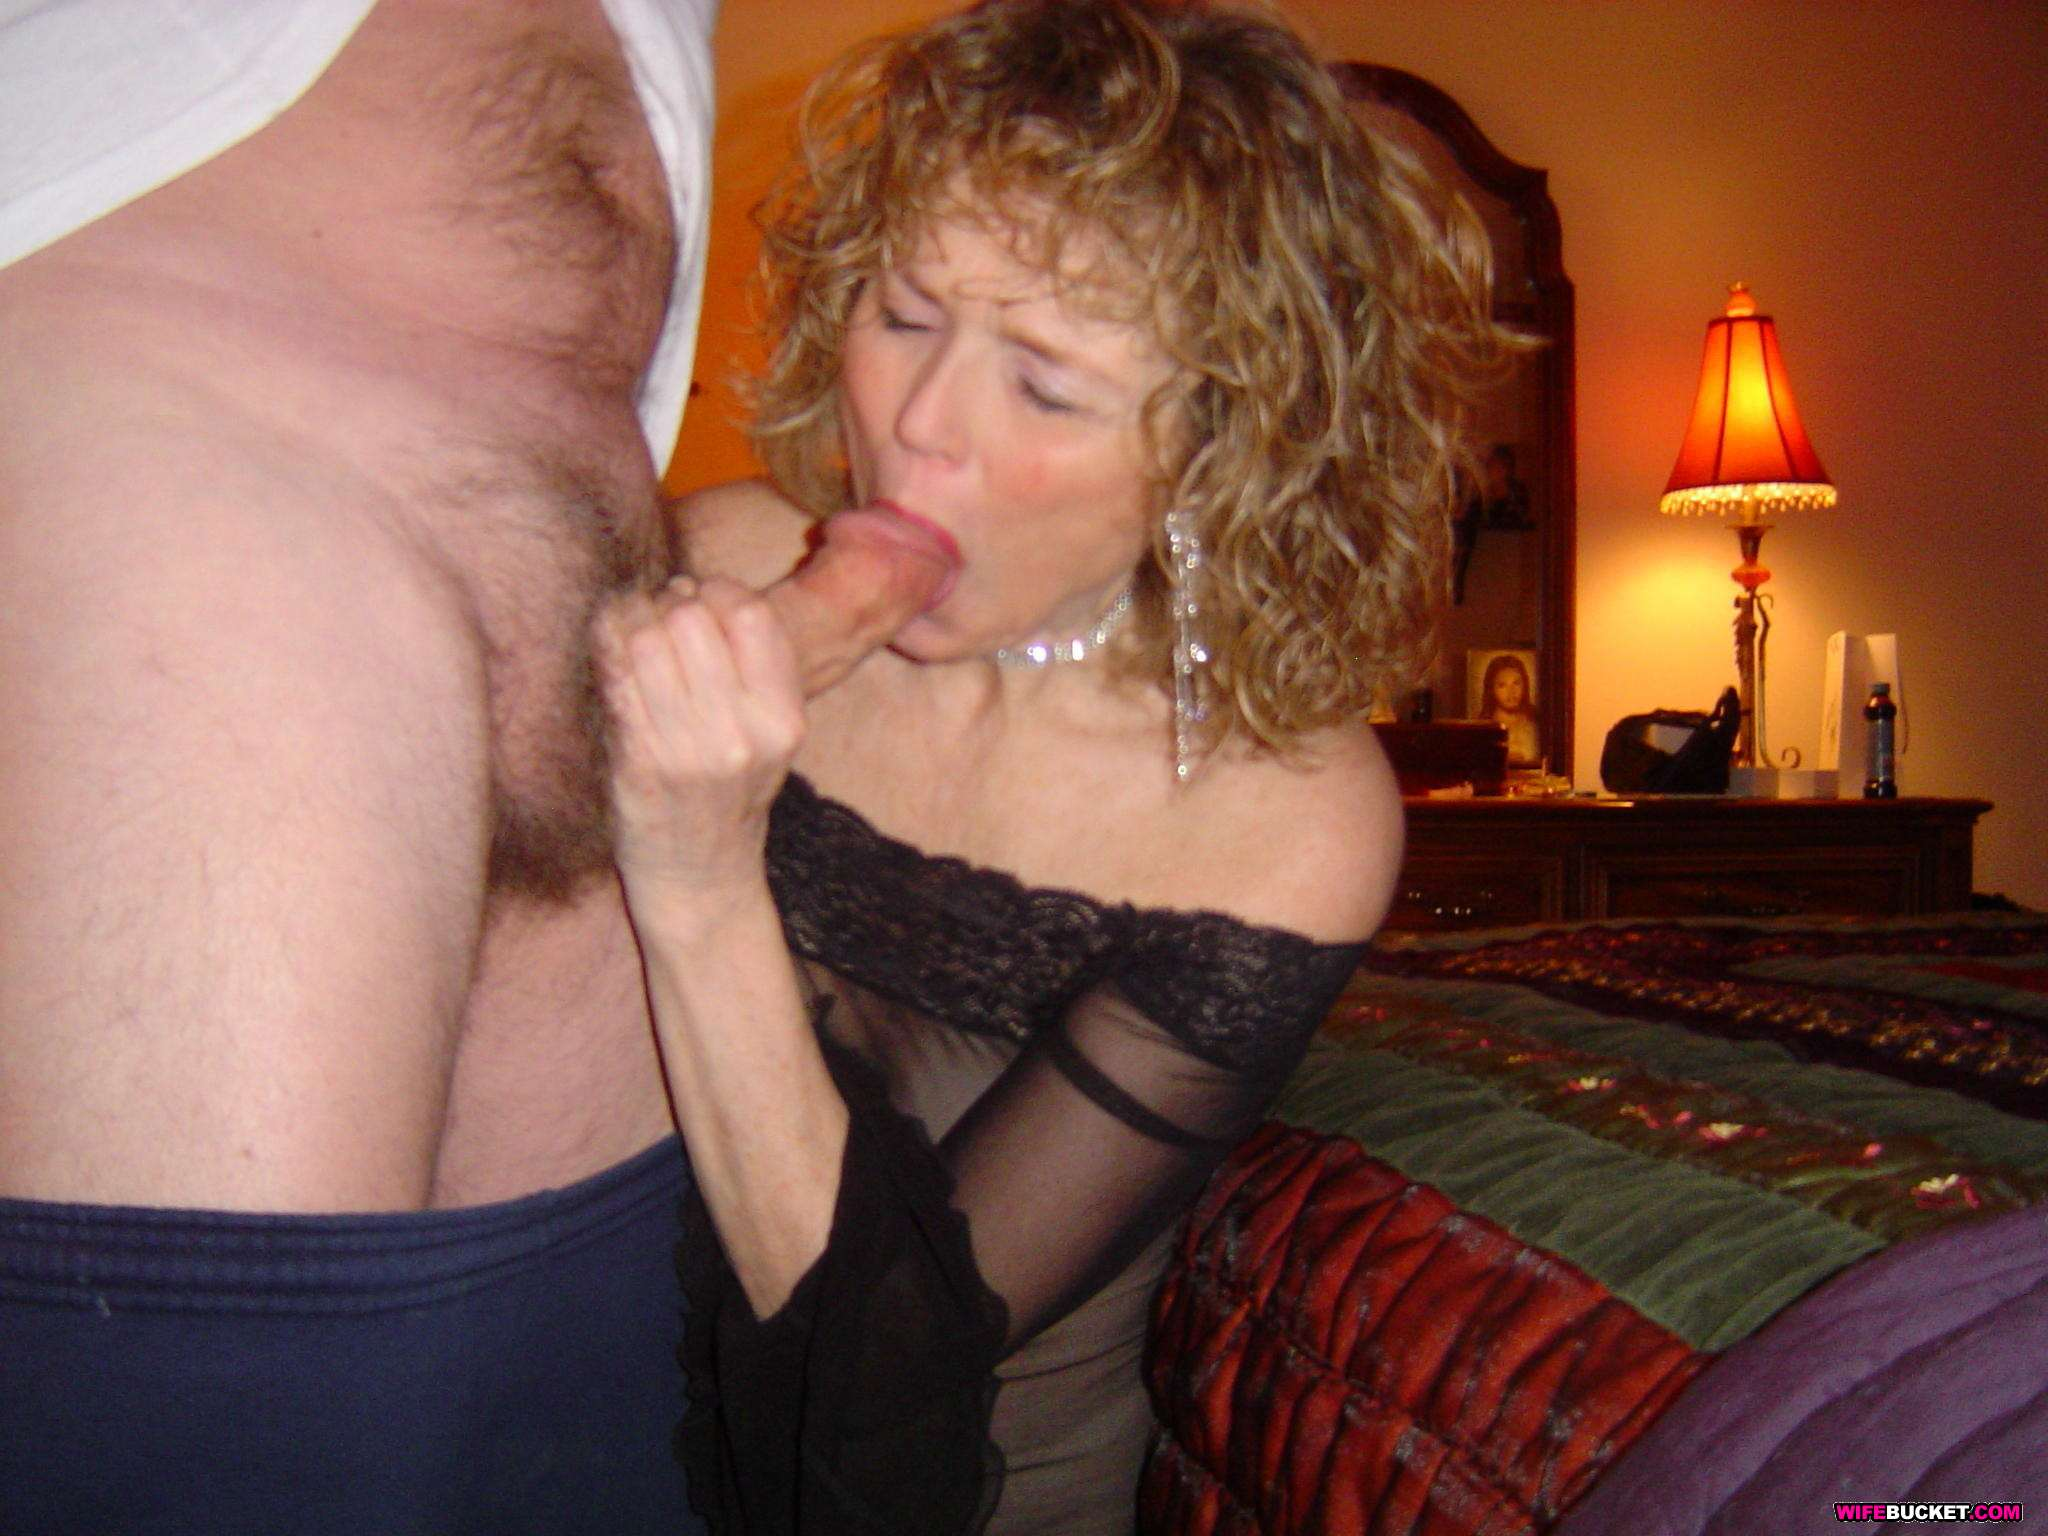 Wife Bucket - Naked Wives, Home Porn, Amateur Swingers -8495